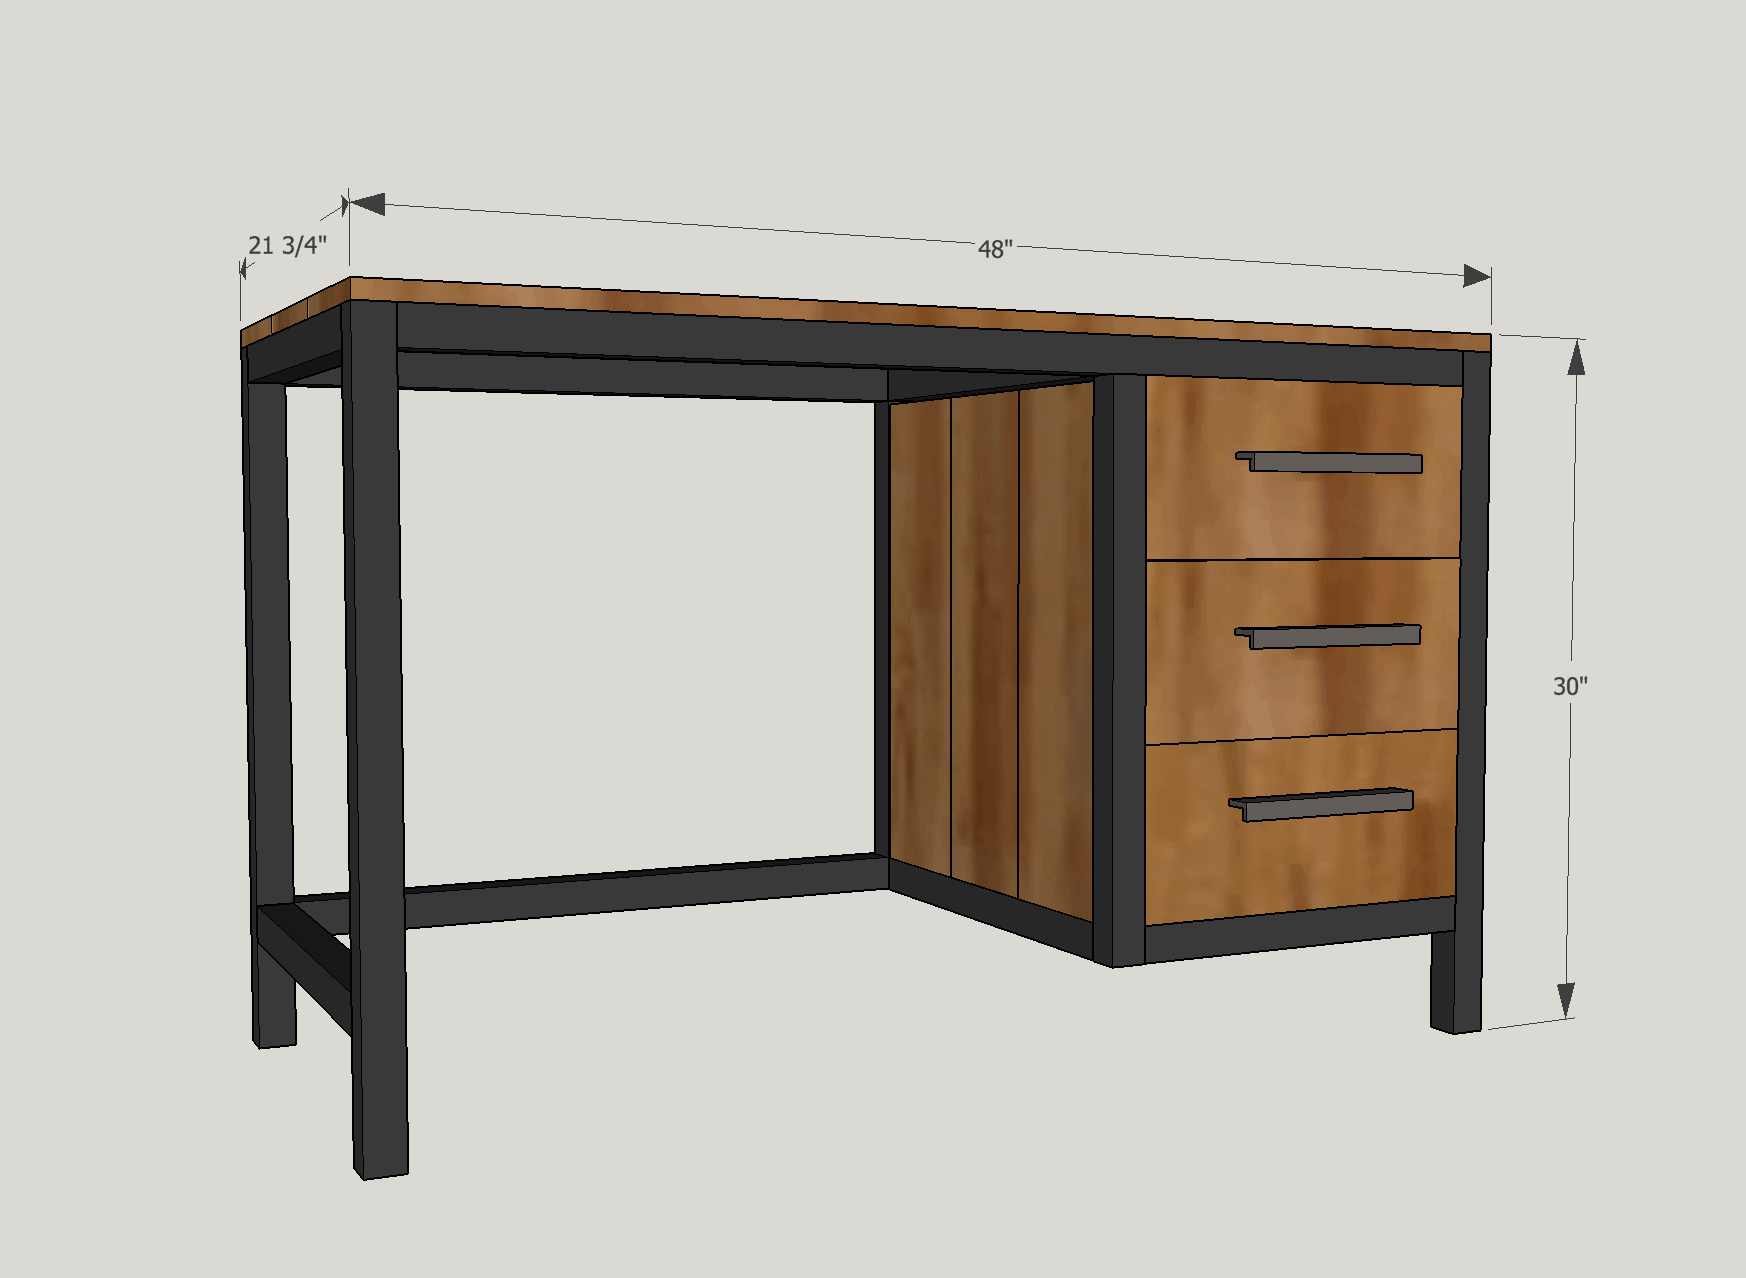 Instagram Builder's Challenge (IGBC) Season 6: DIY Industrial Desk